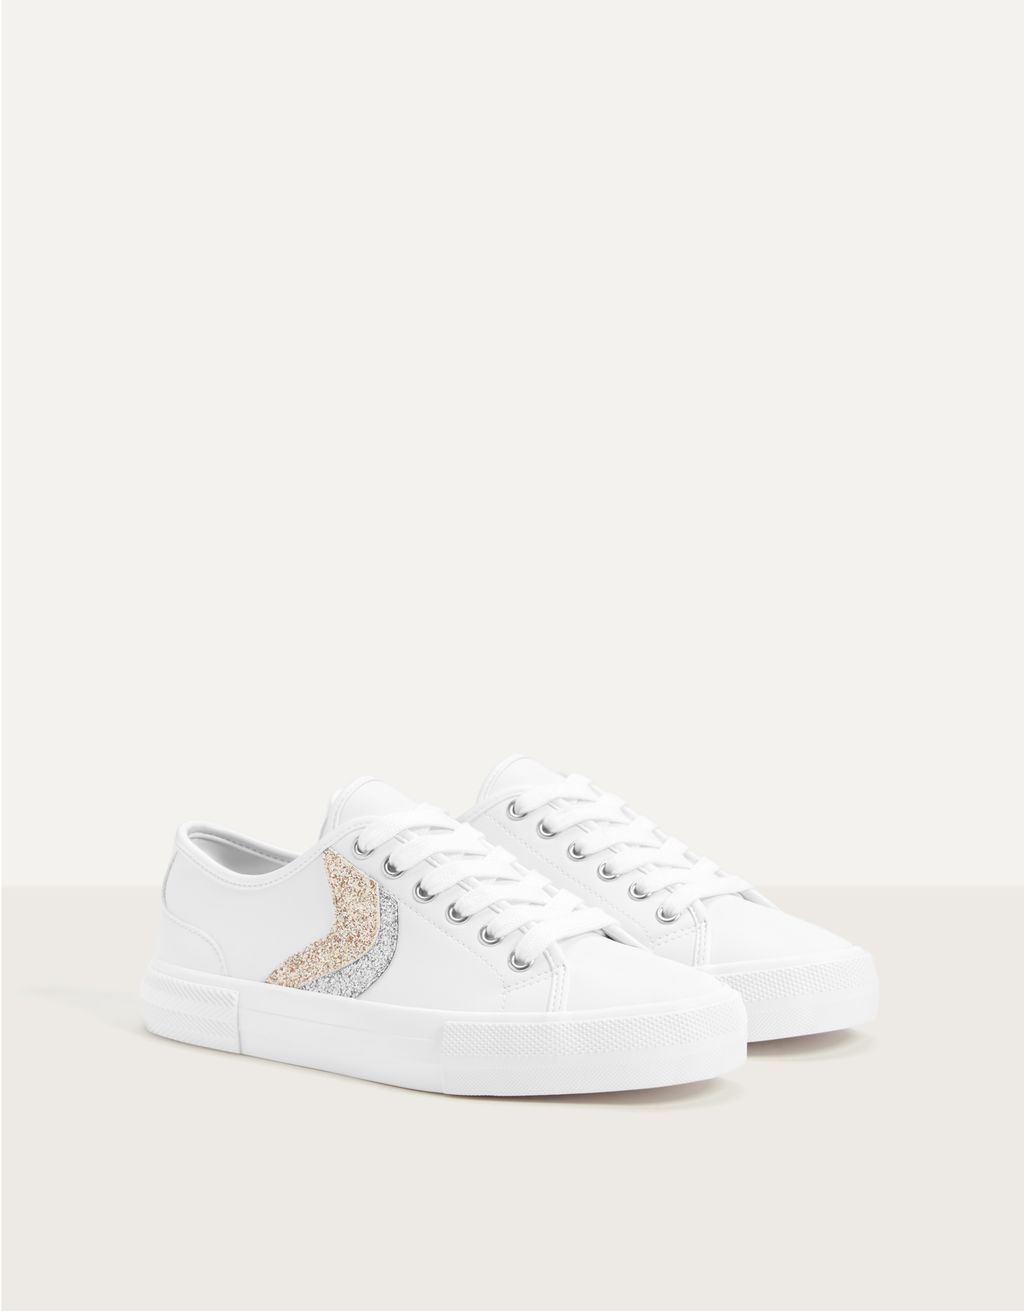 Sneakers with glitter detail